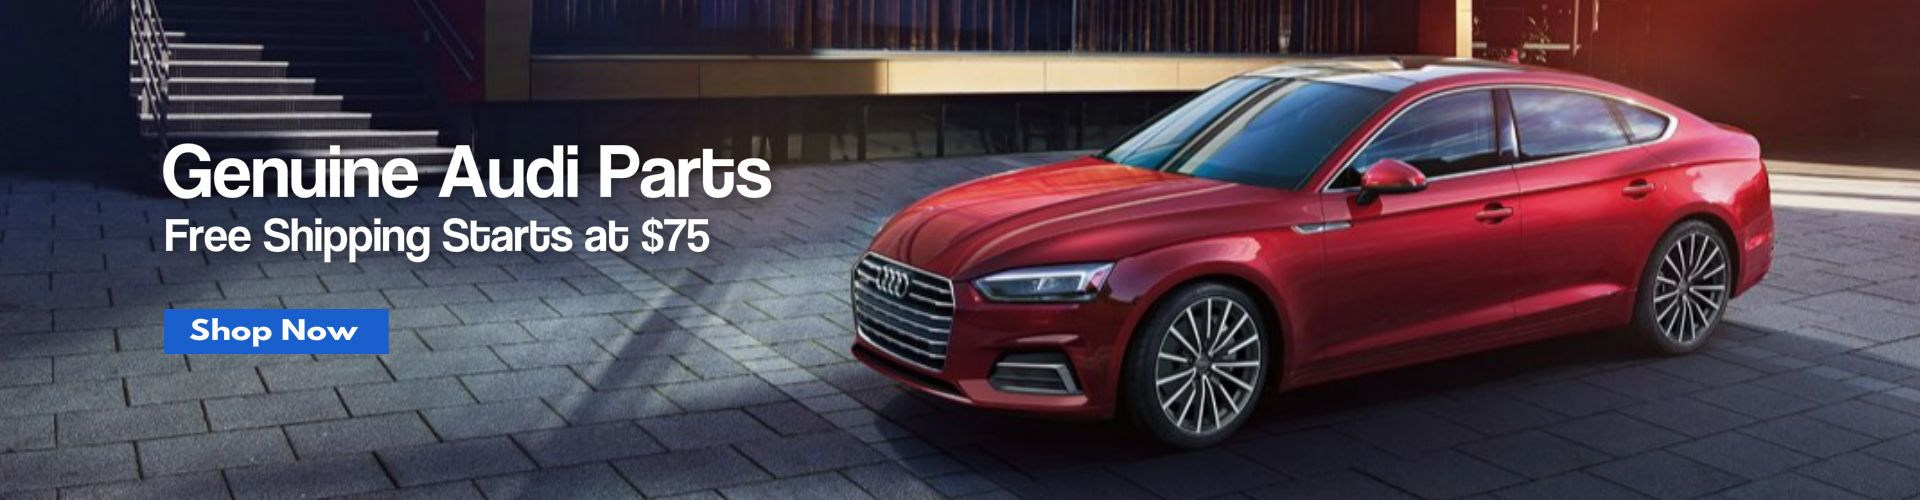 OEM Audi Parts and Accessories